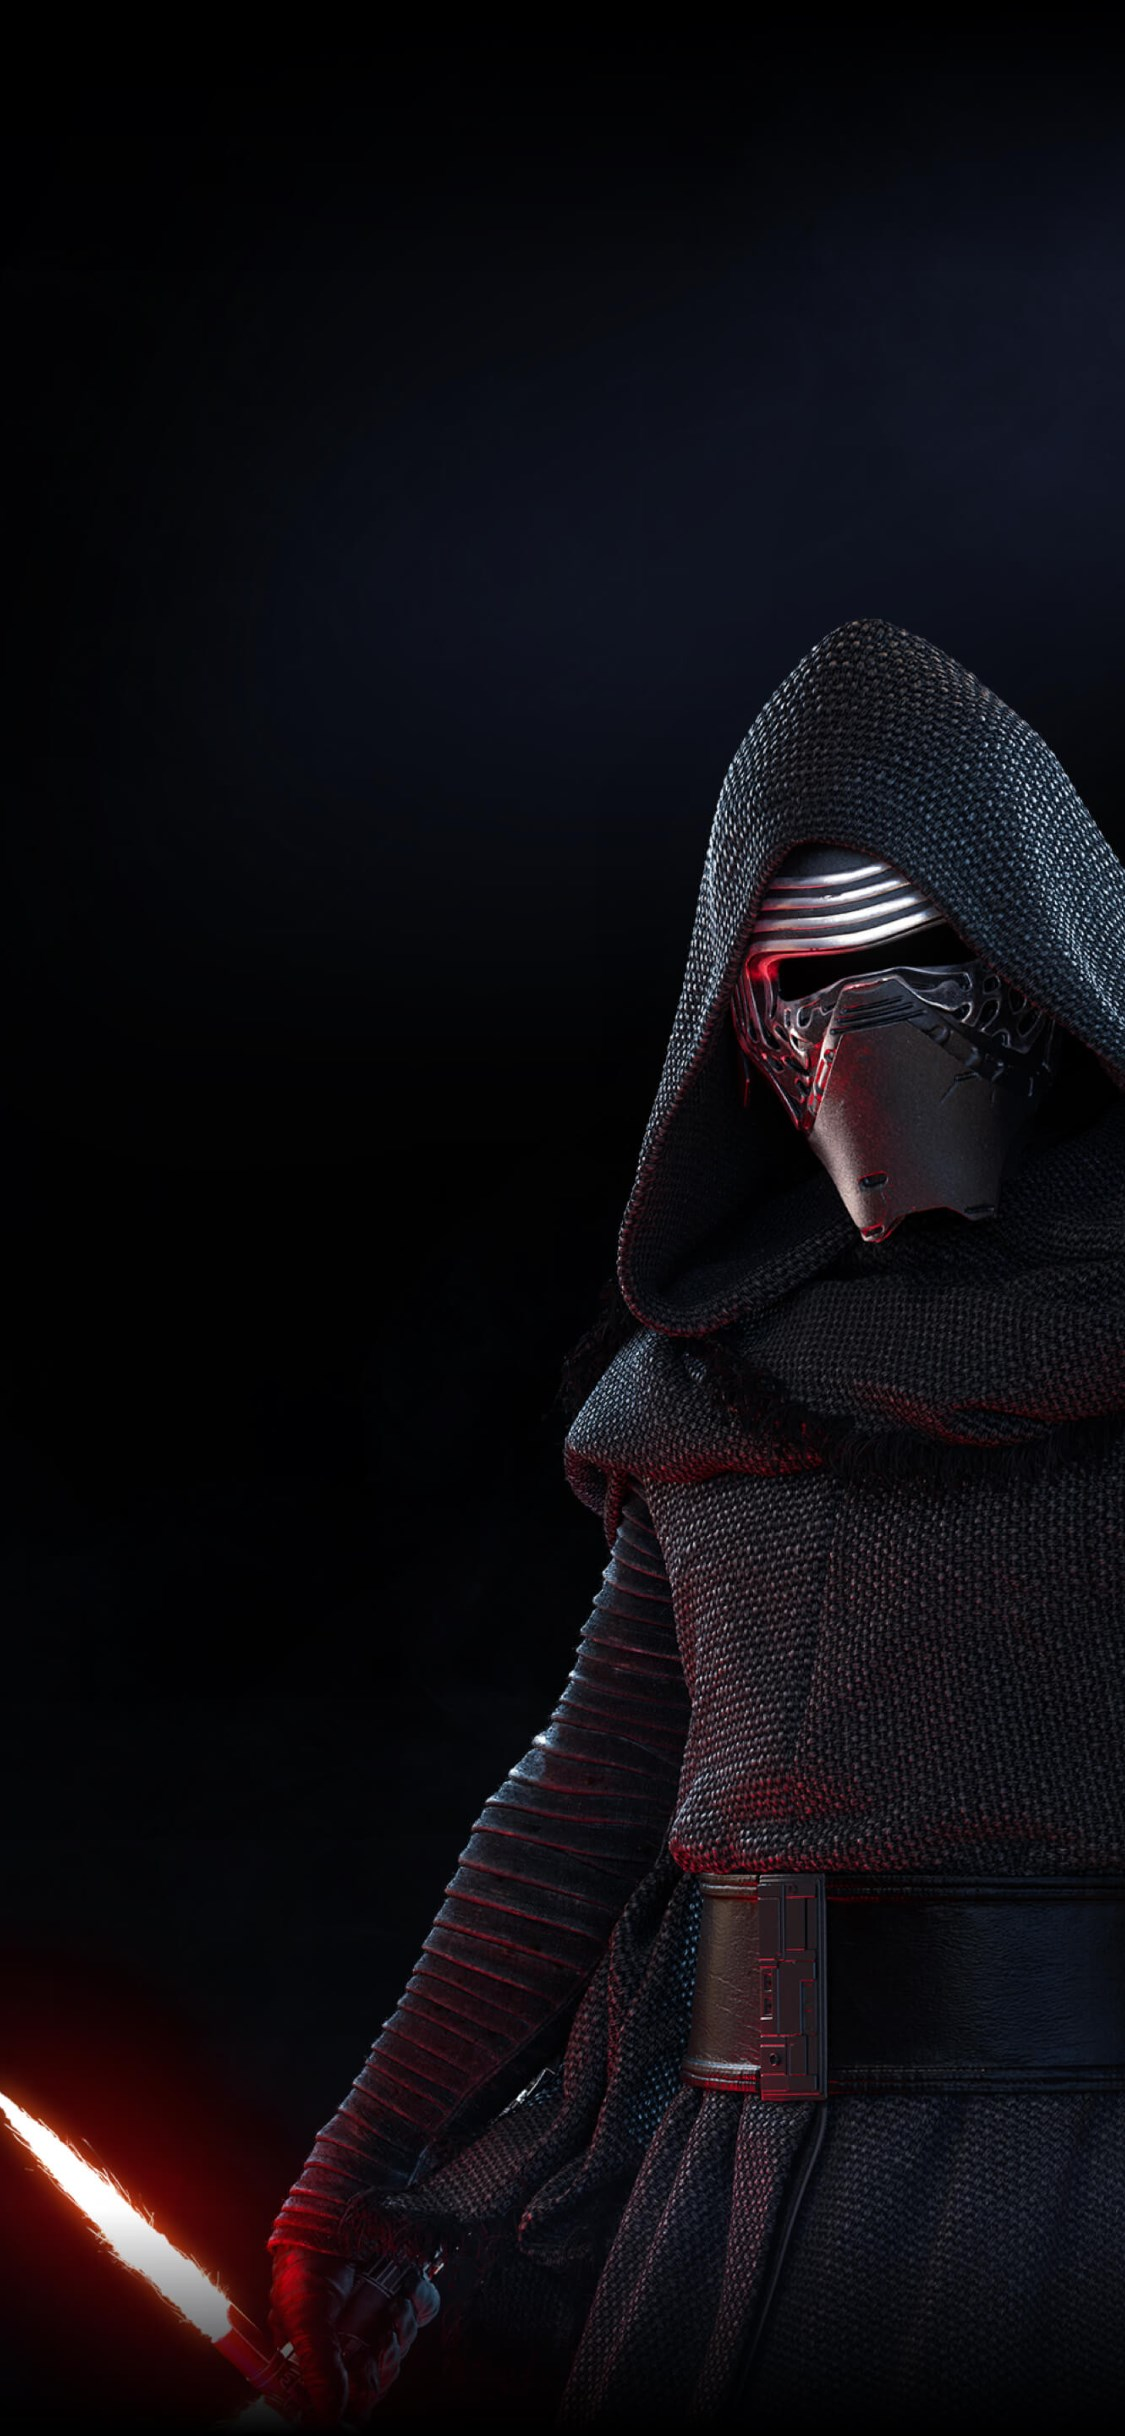 kylo ren star wars battlefront 1125x2436 746 mm 90